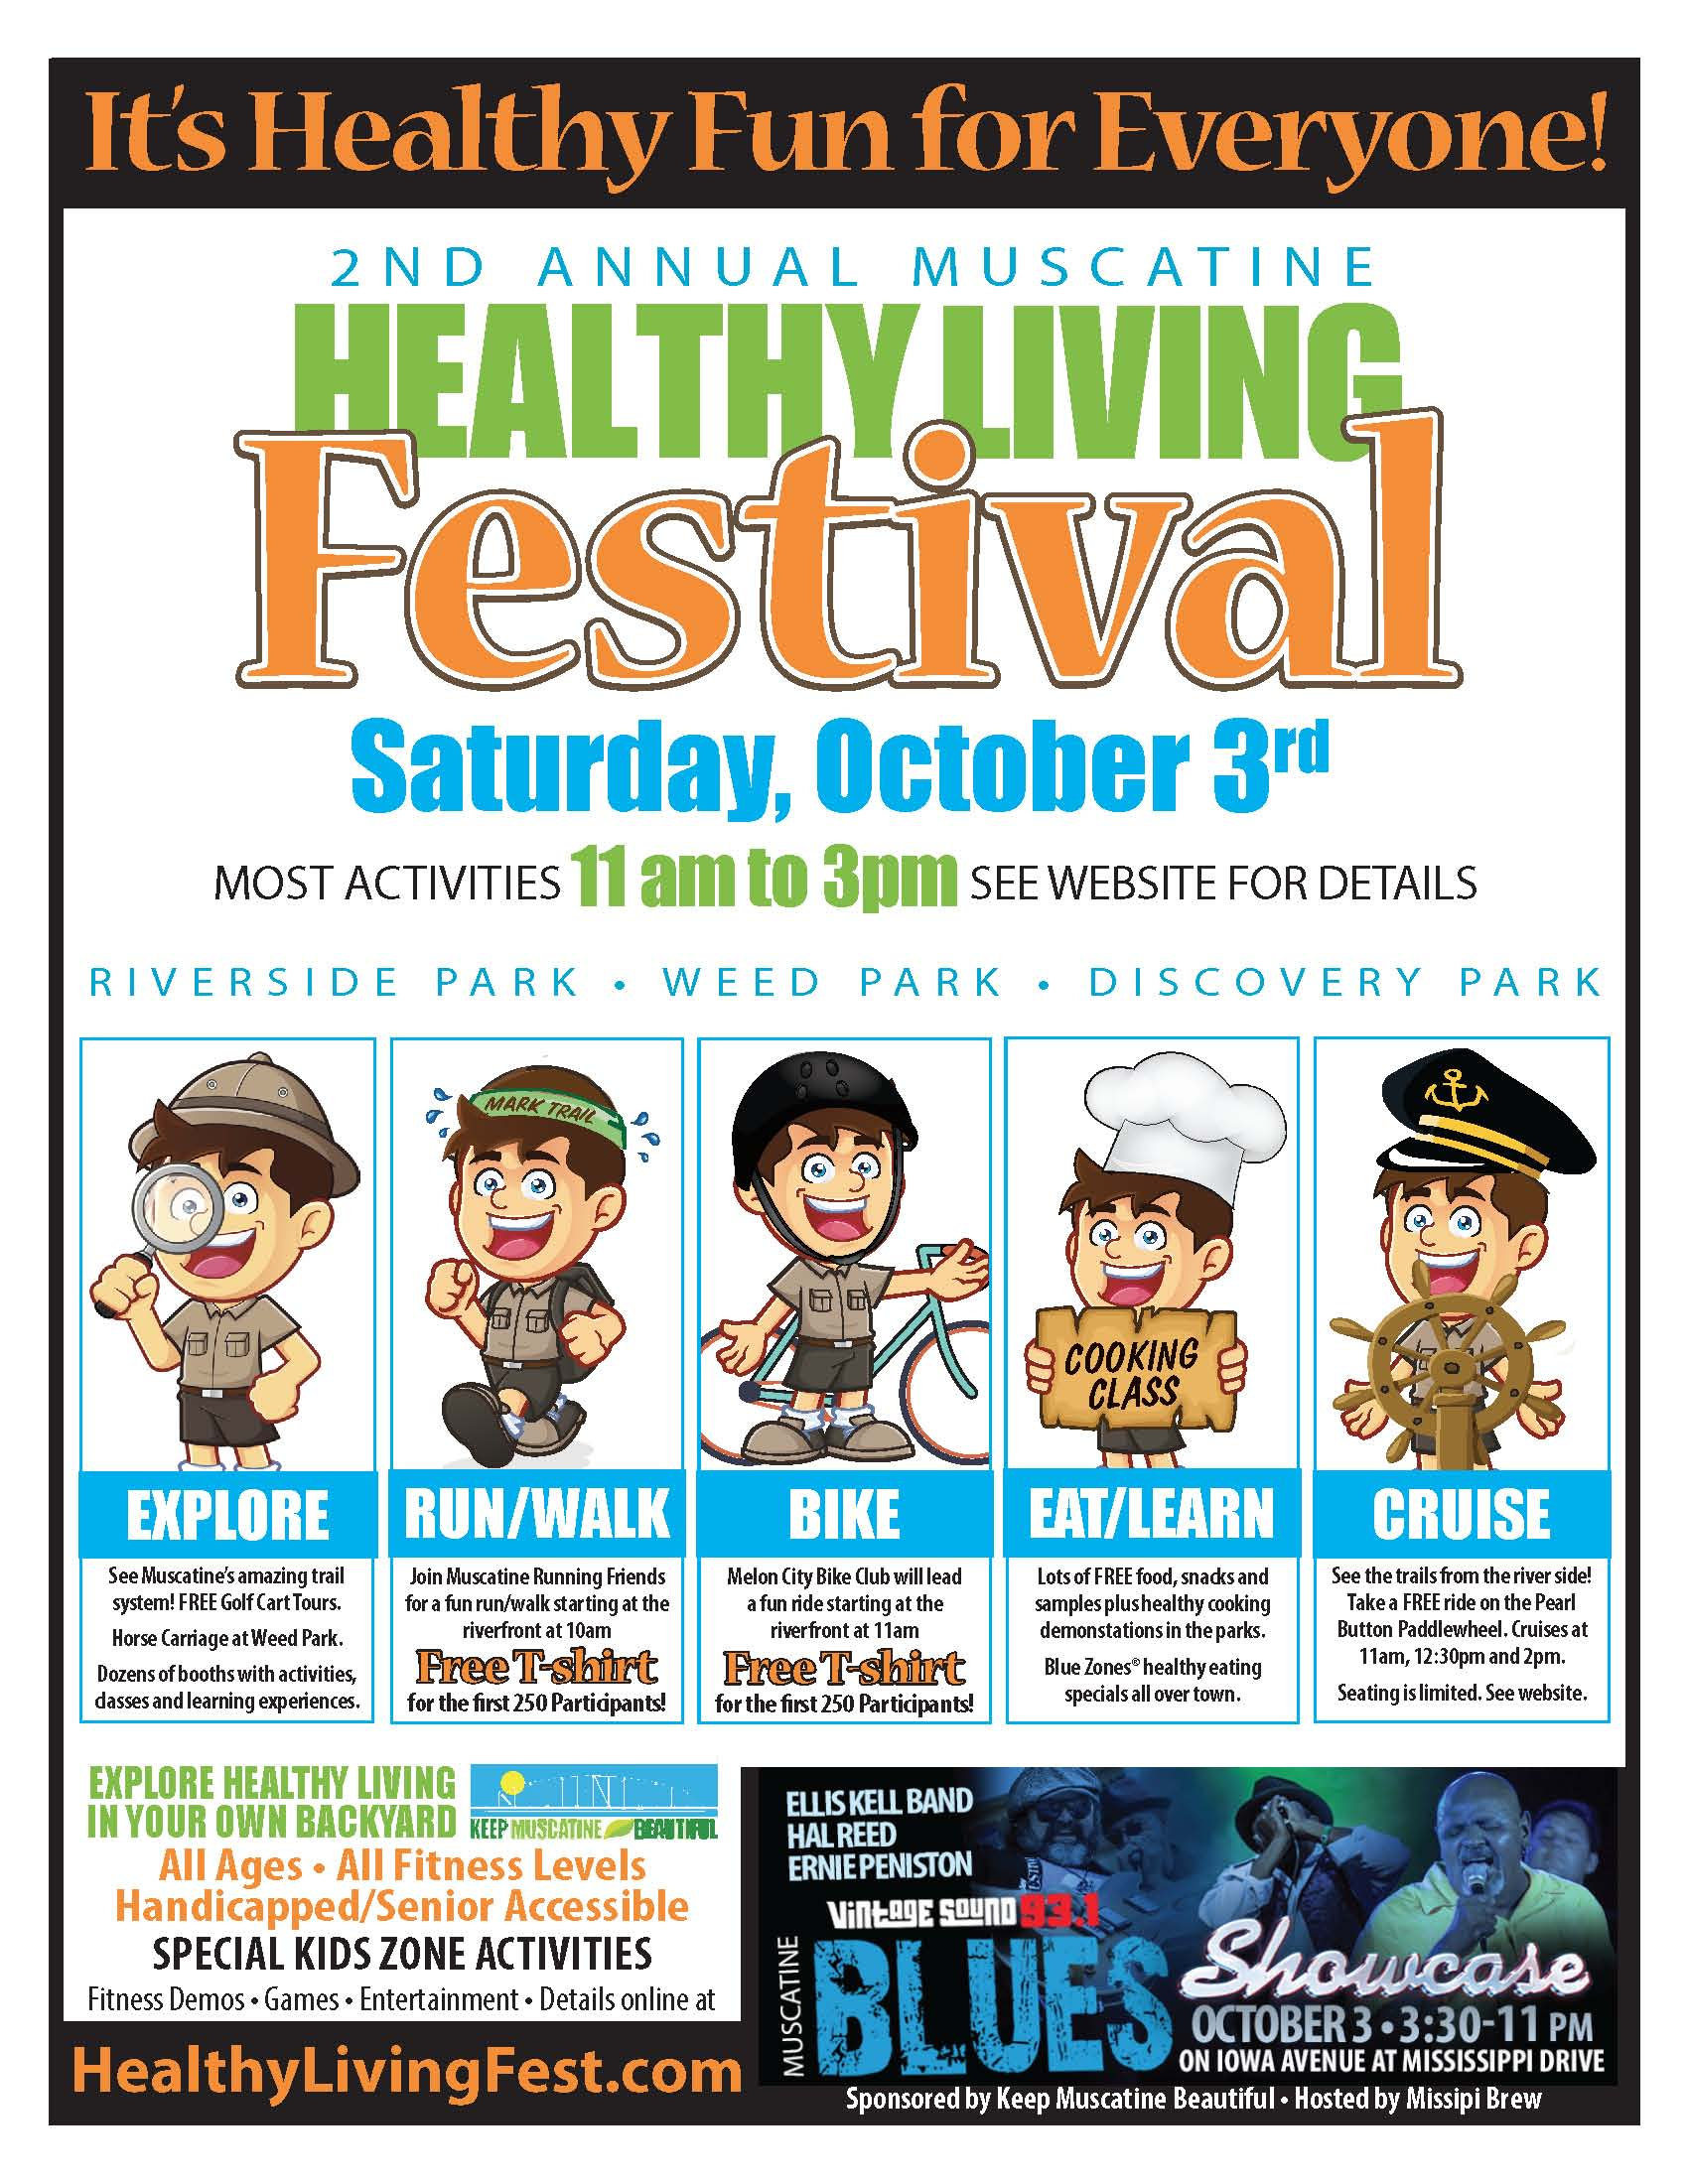 Muscatine Healthy Living Festival - Saturday October 3rd